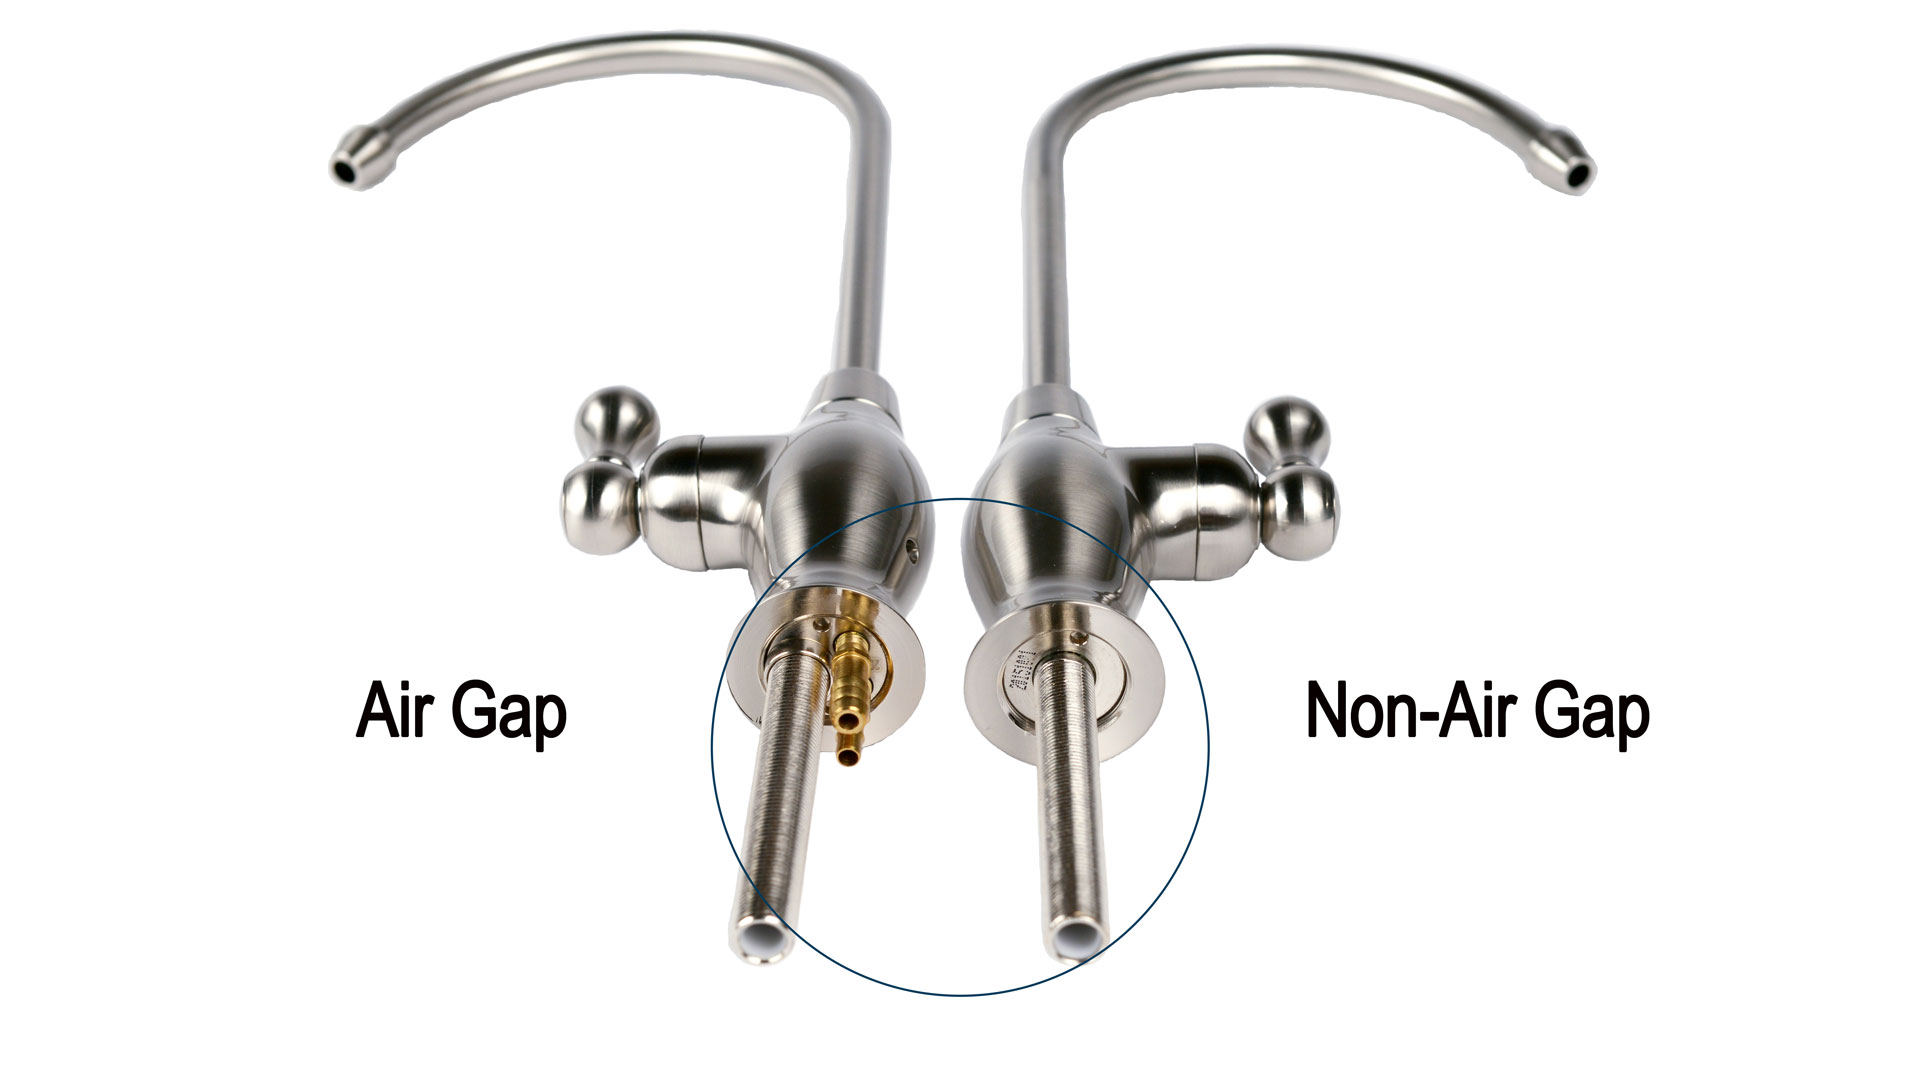 hight resolution of picture of an air gap faucet side by side a non air gap faucet